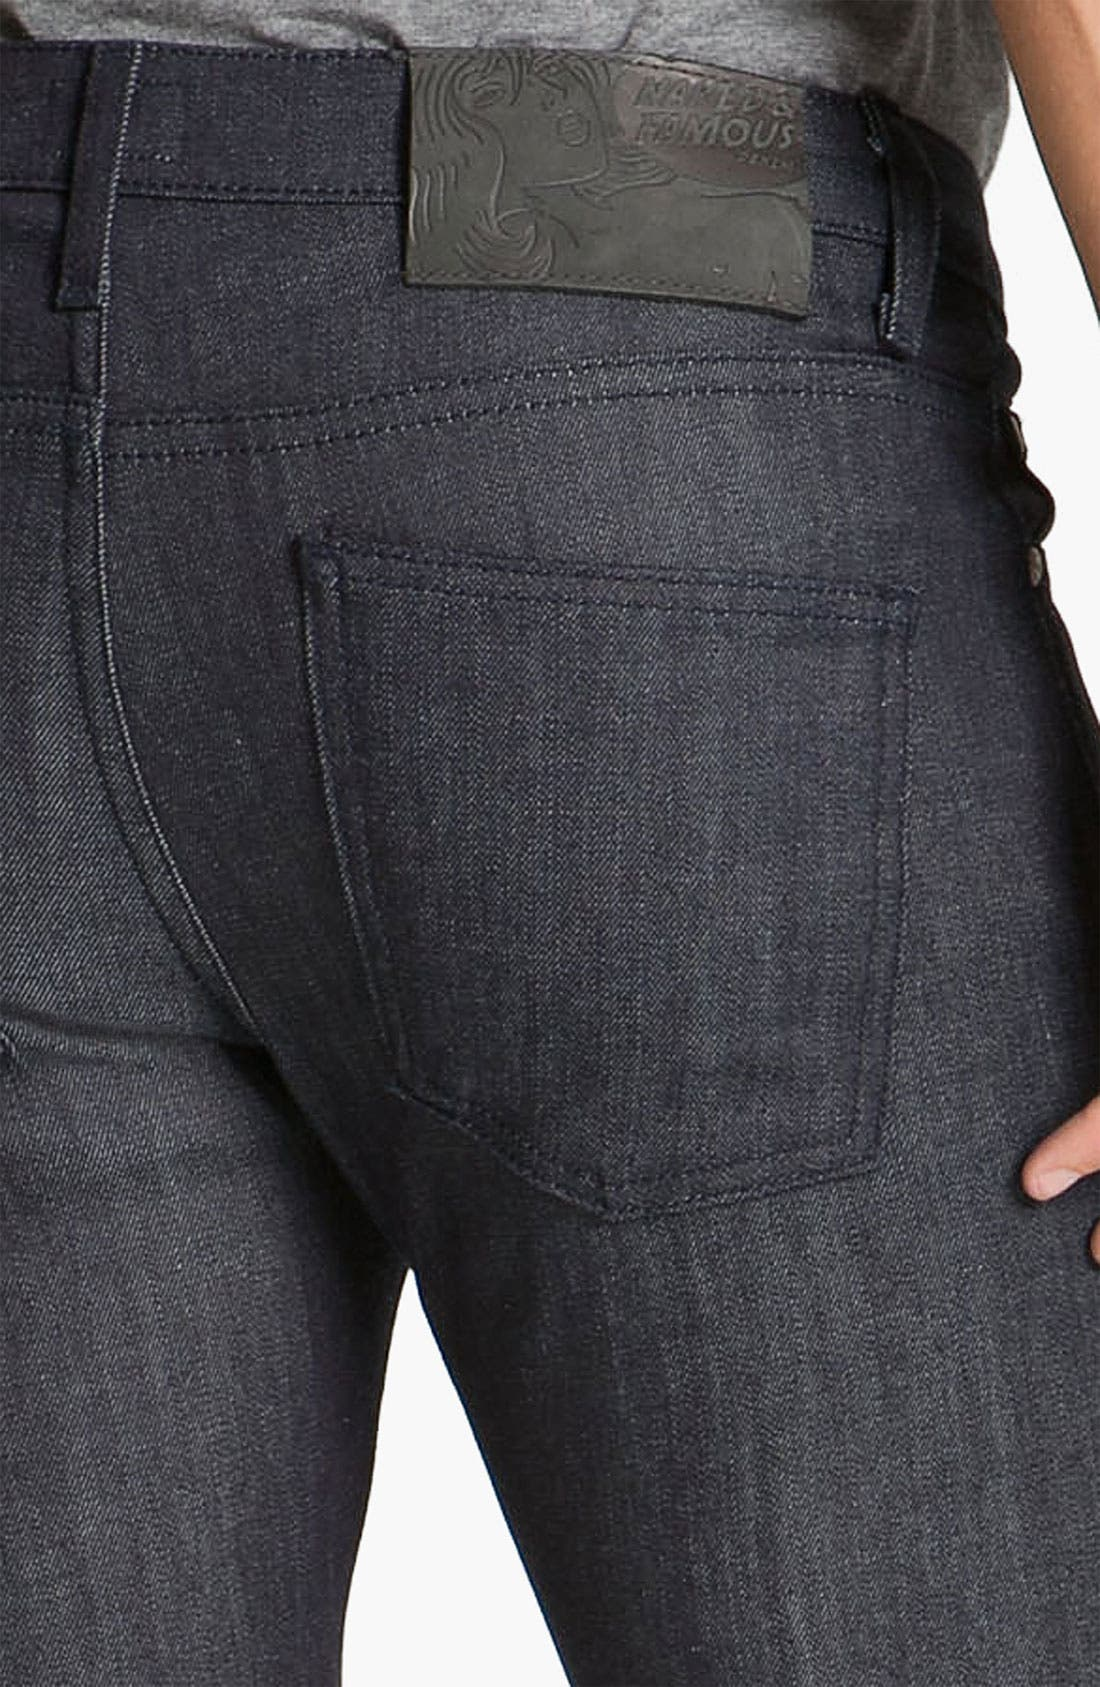 Alternate Image 4  - Naked & Famous Denim 'Skinny Guy' Slim Cotton Cashmere Skinny Leg Jeans (Dark Indigo)